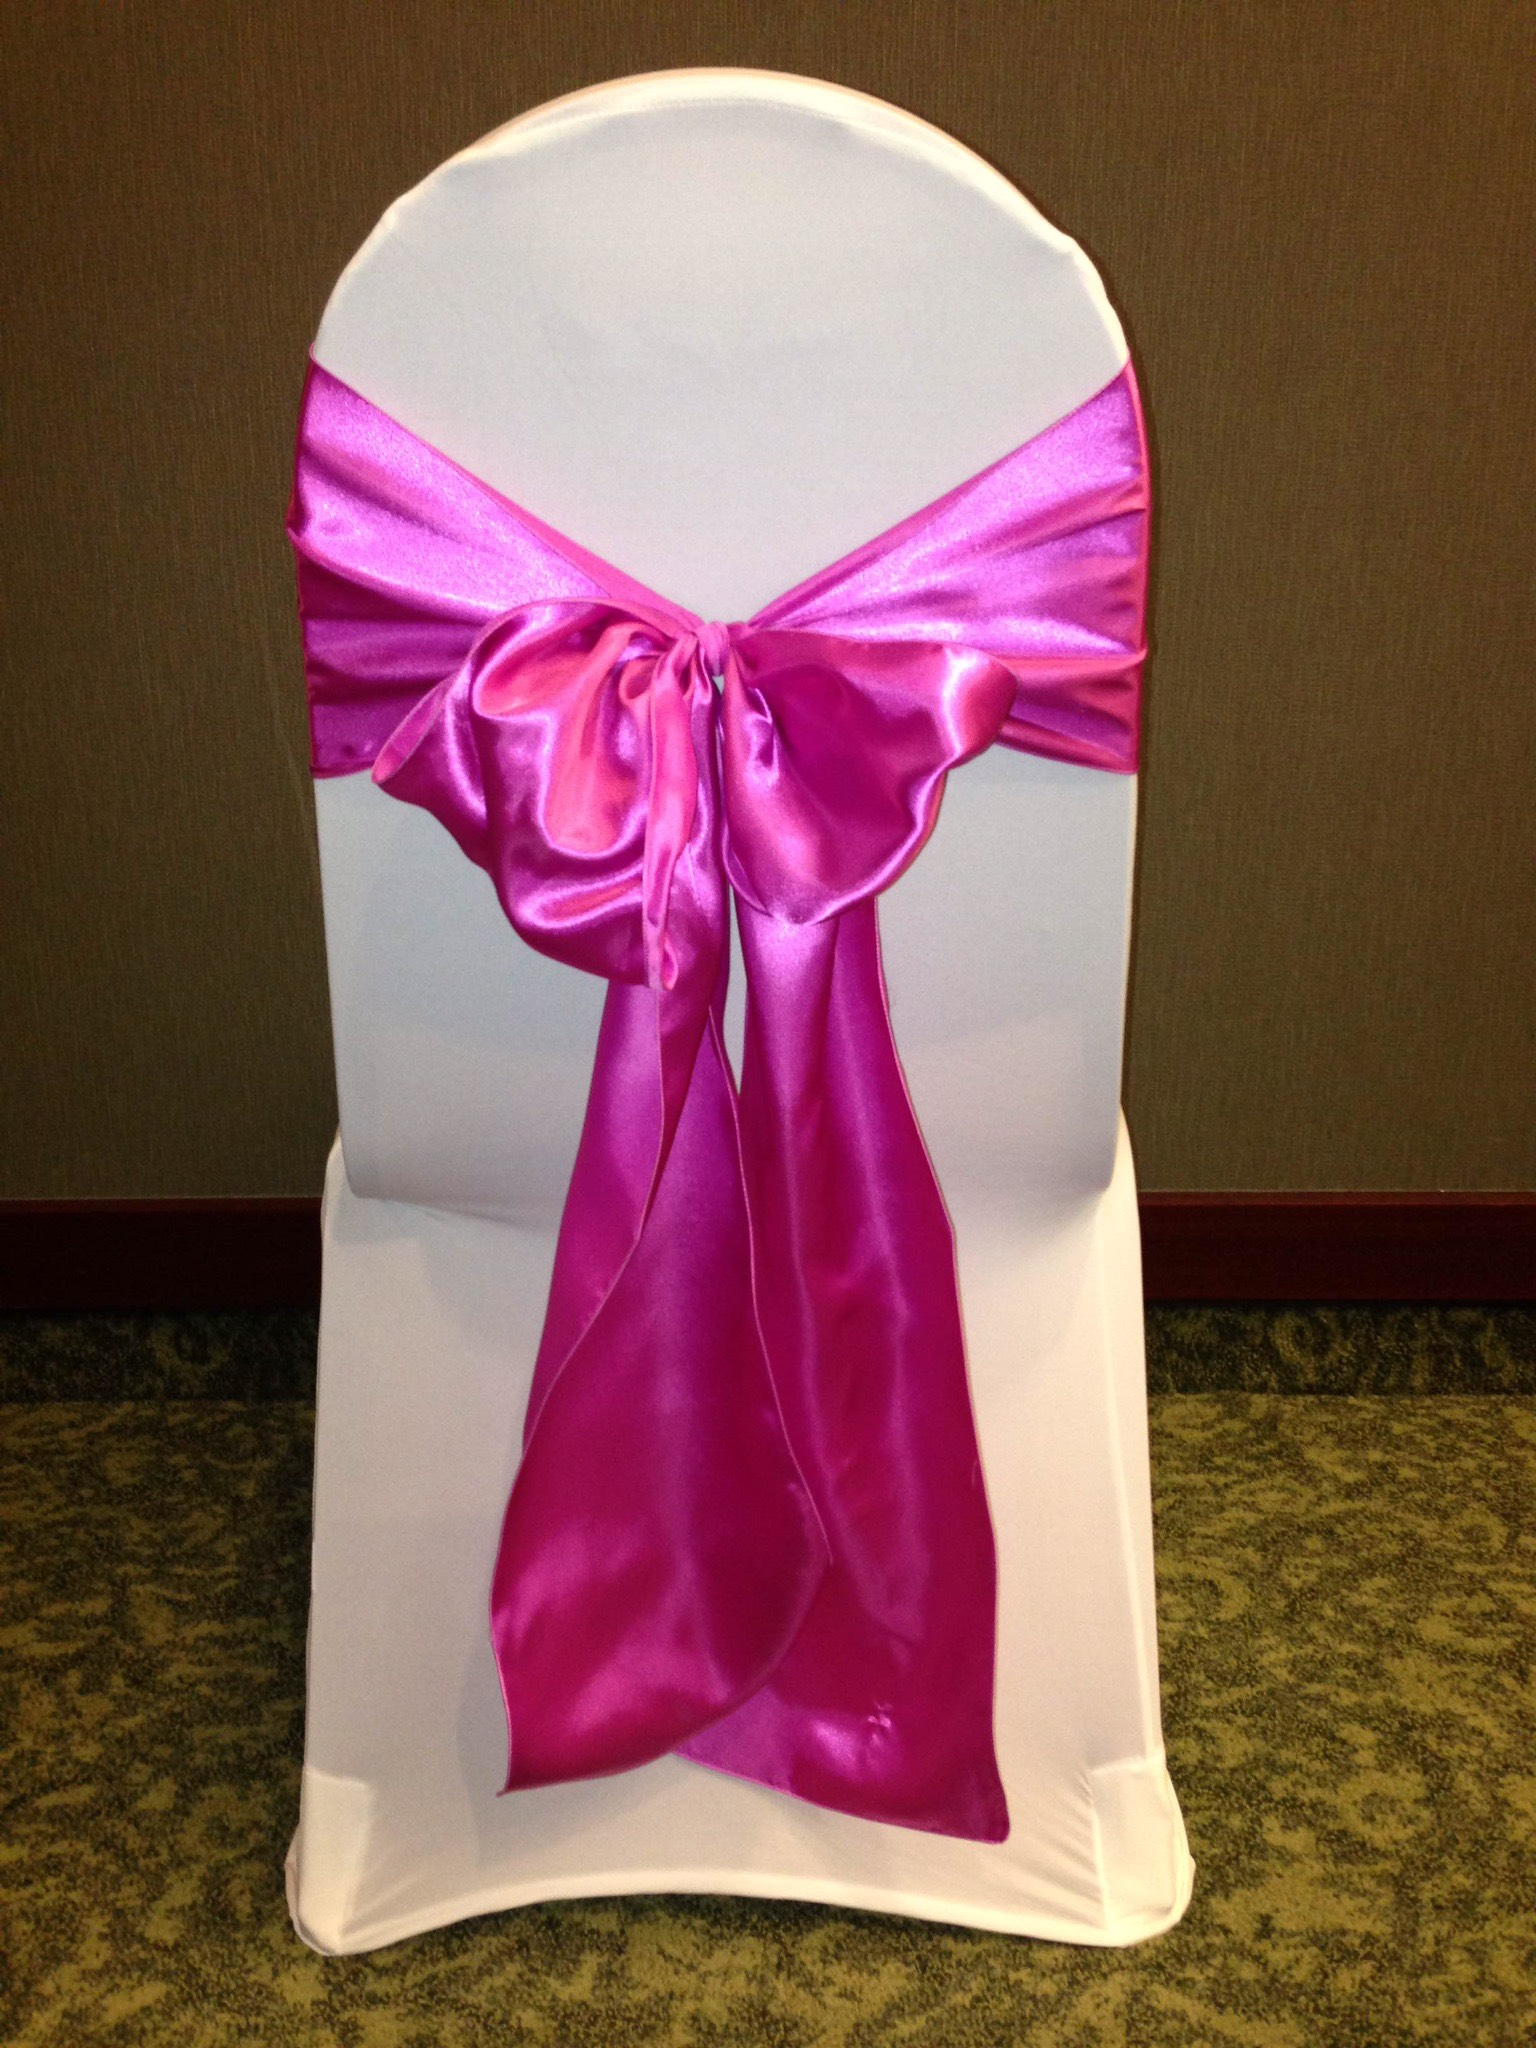 Pink sash and white chair cover